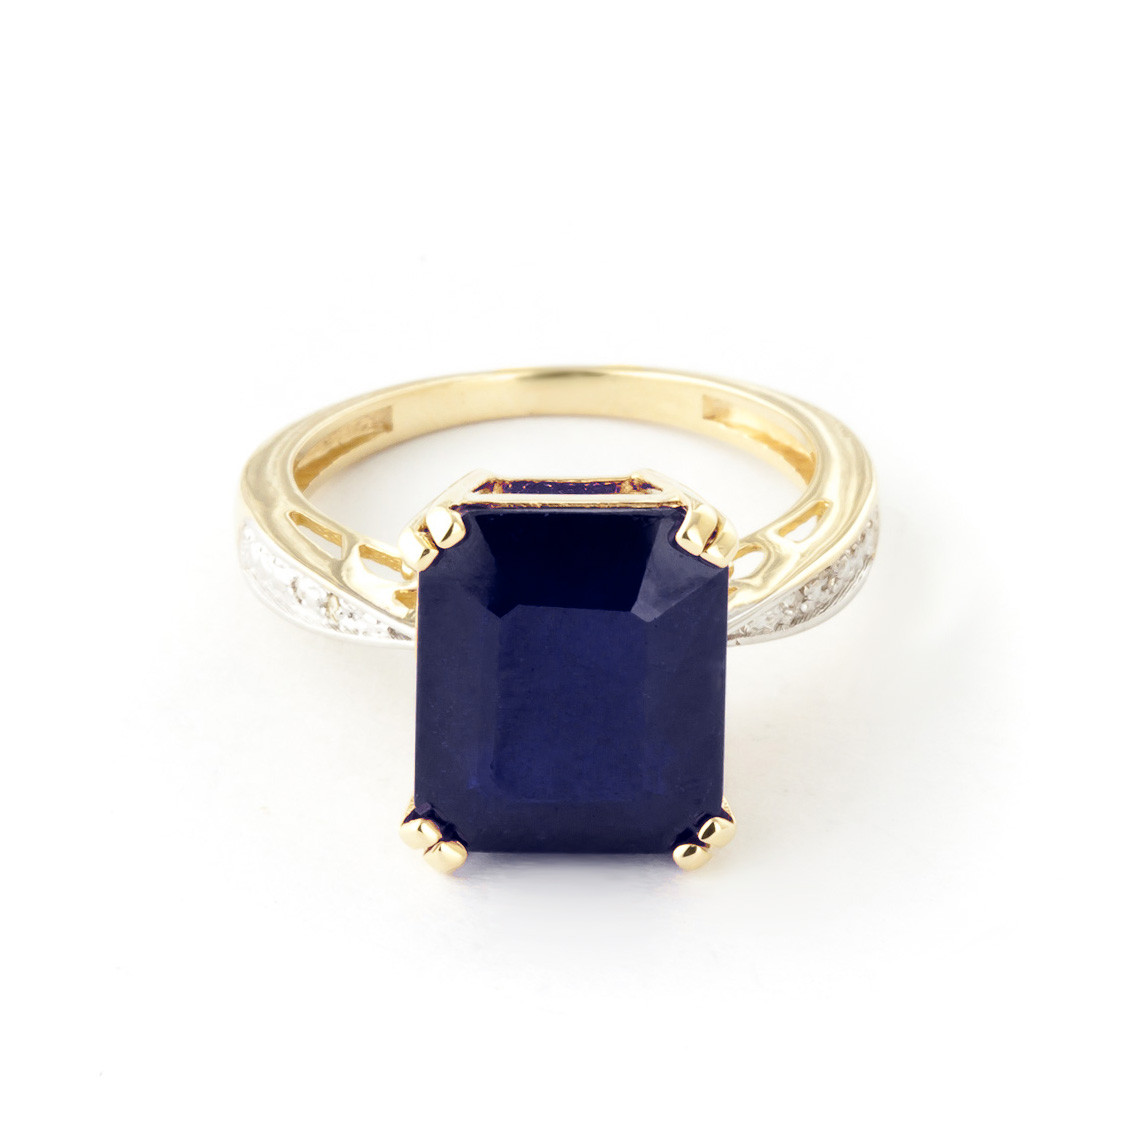 Octagon Cut Sapphire Ring 7.27 ctw in 9ct Gold